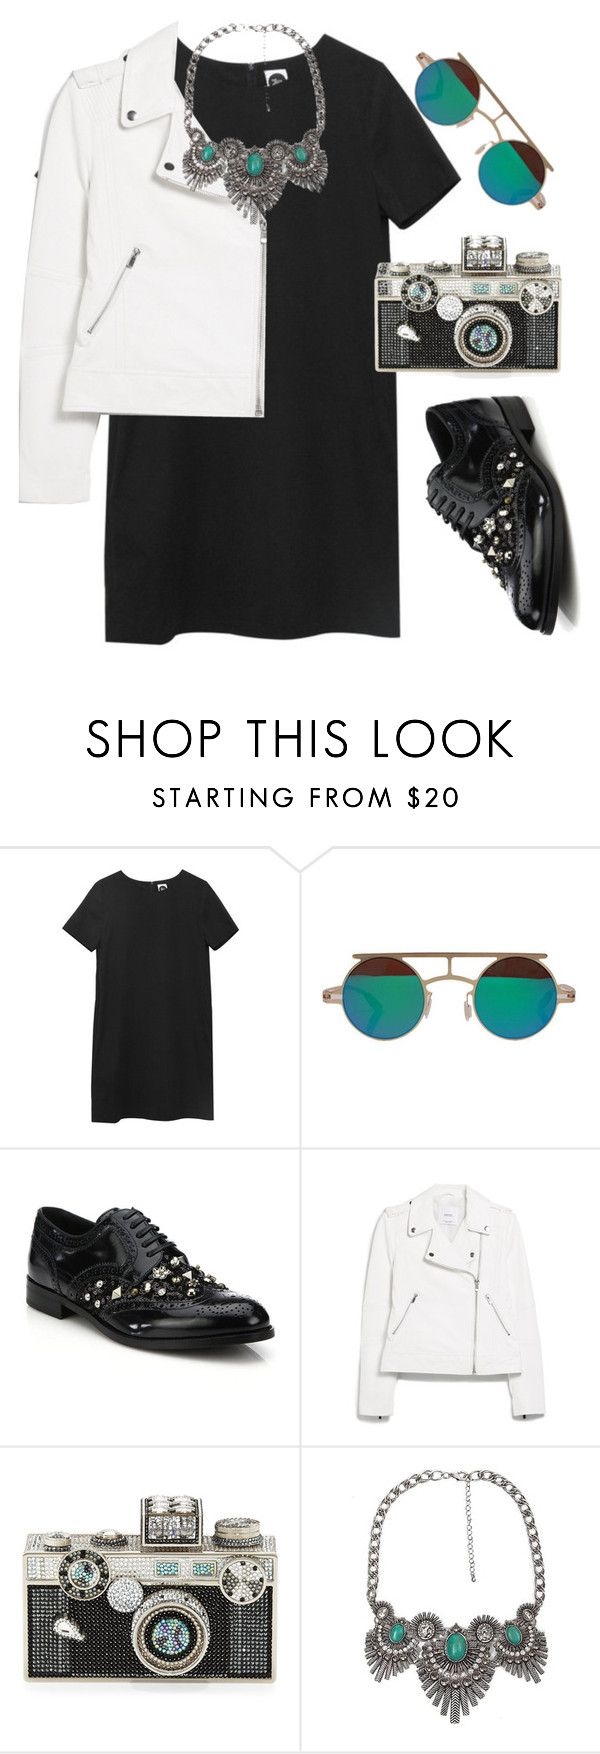 """""""Untitled #1453"""" by lauraafreedom ❤ liked on Polyvore featuring Dolce&Gabbana, MANGO, Judith Leiber, BKE, women's clothing, women, female, woman, misses and juniors"""